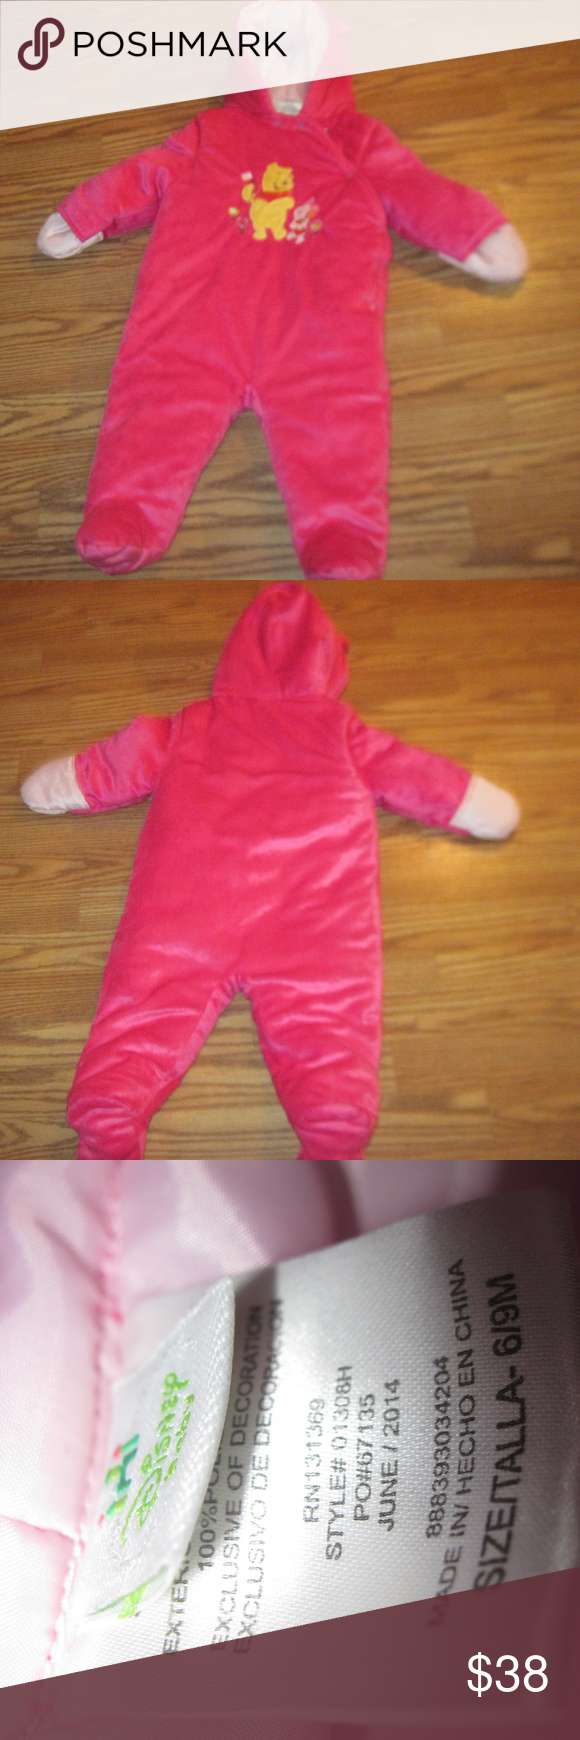 6e7aa4743246 Disney WINNIE THE POOH Baby Winter Jumpsuit 6 9M